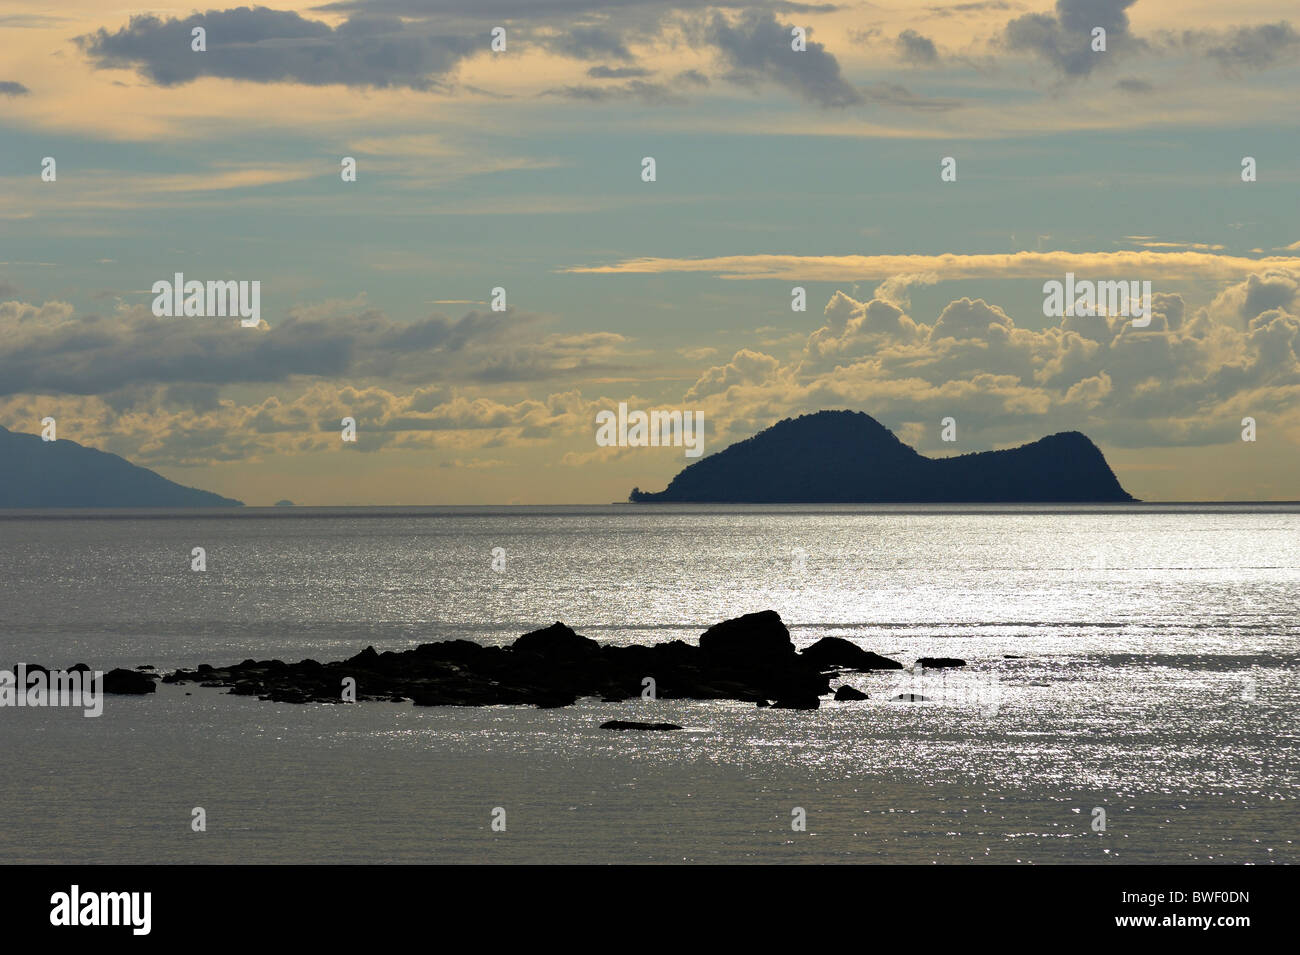 Rocks in the South China Sea with Satang Island behind them - Stock Image